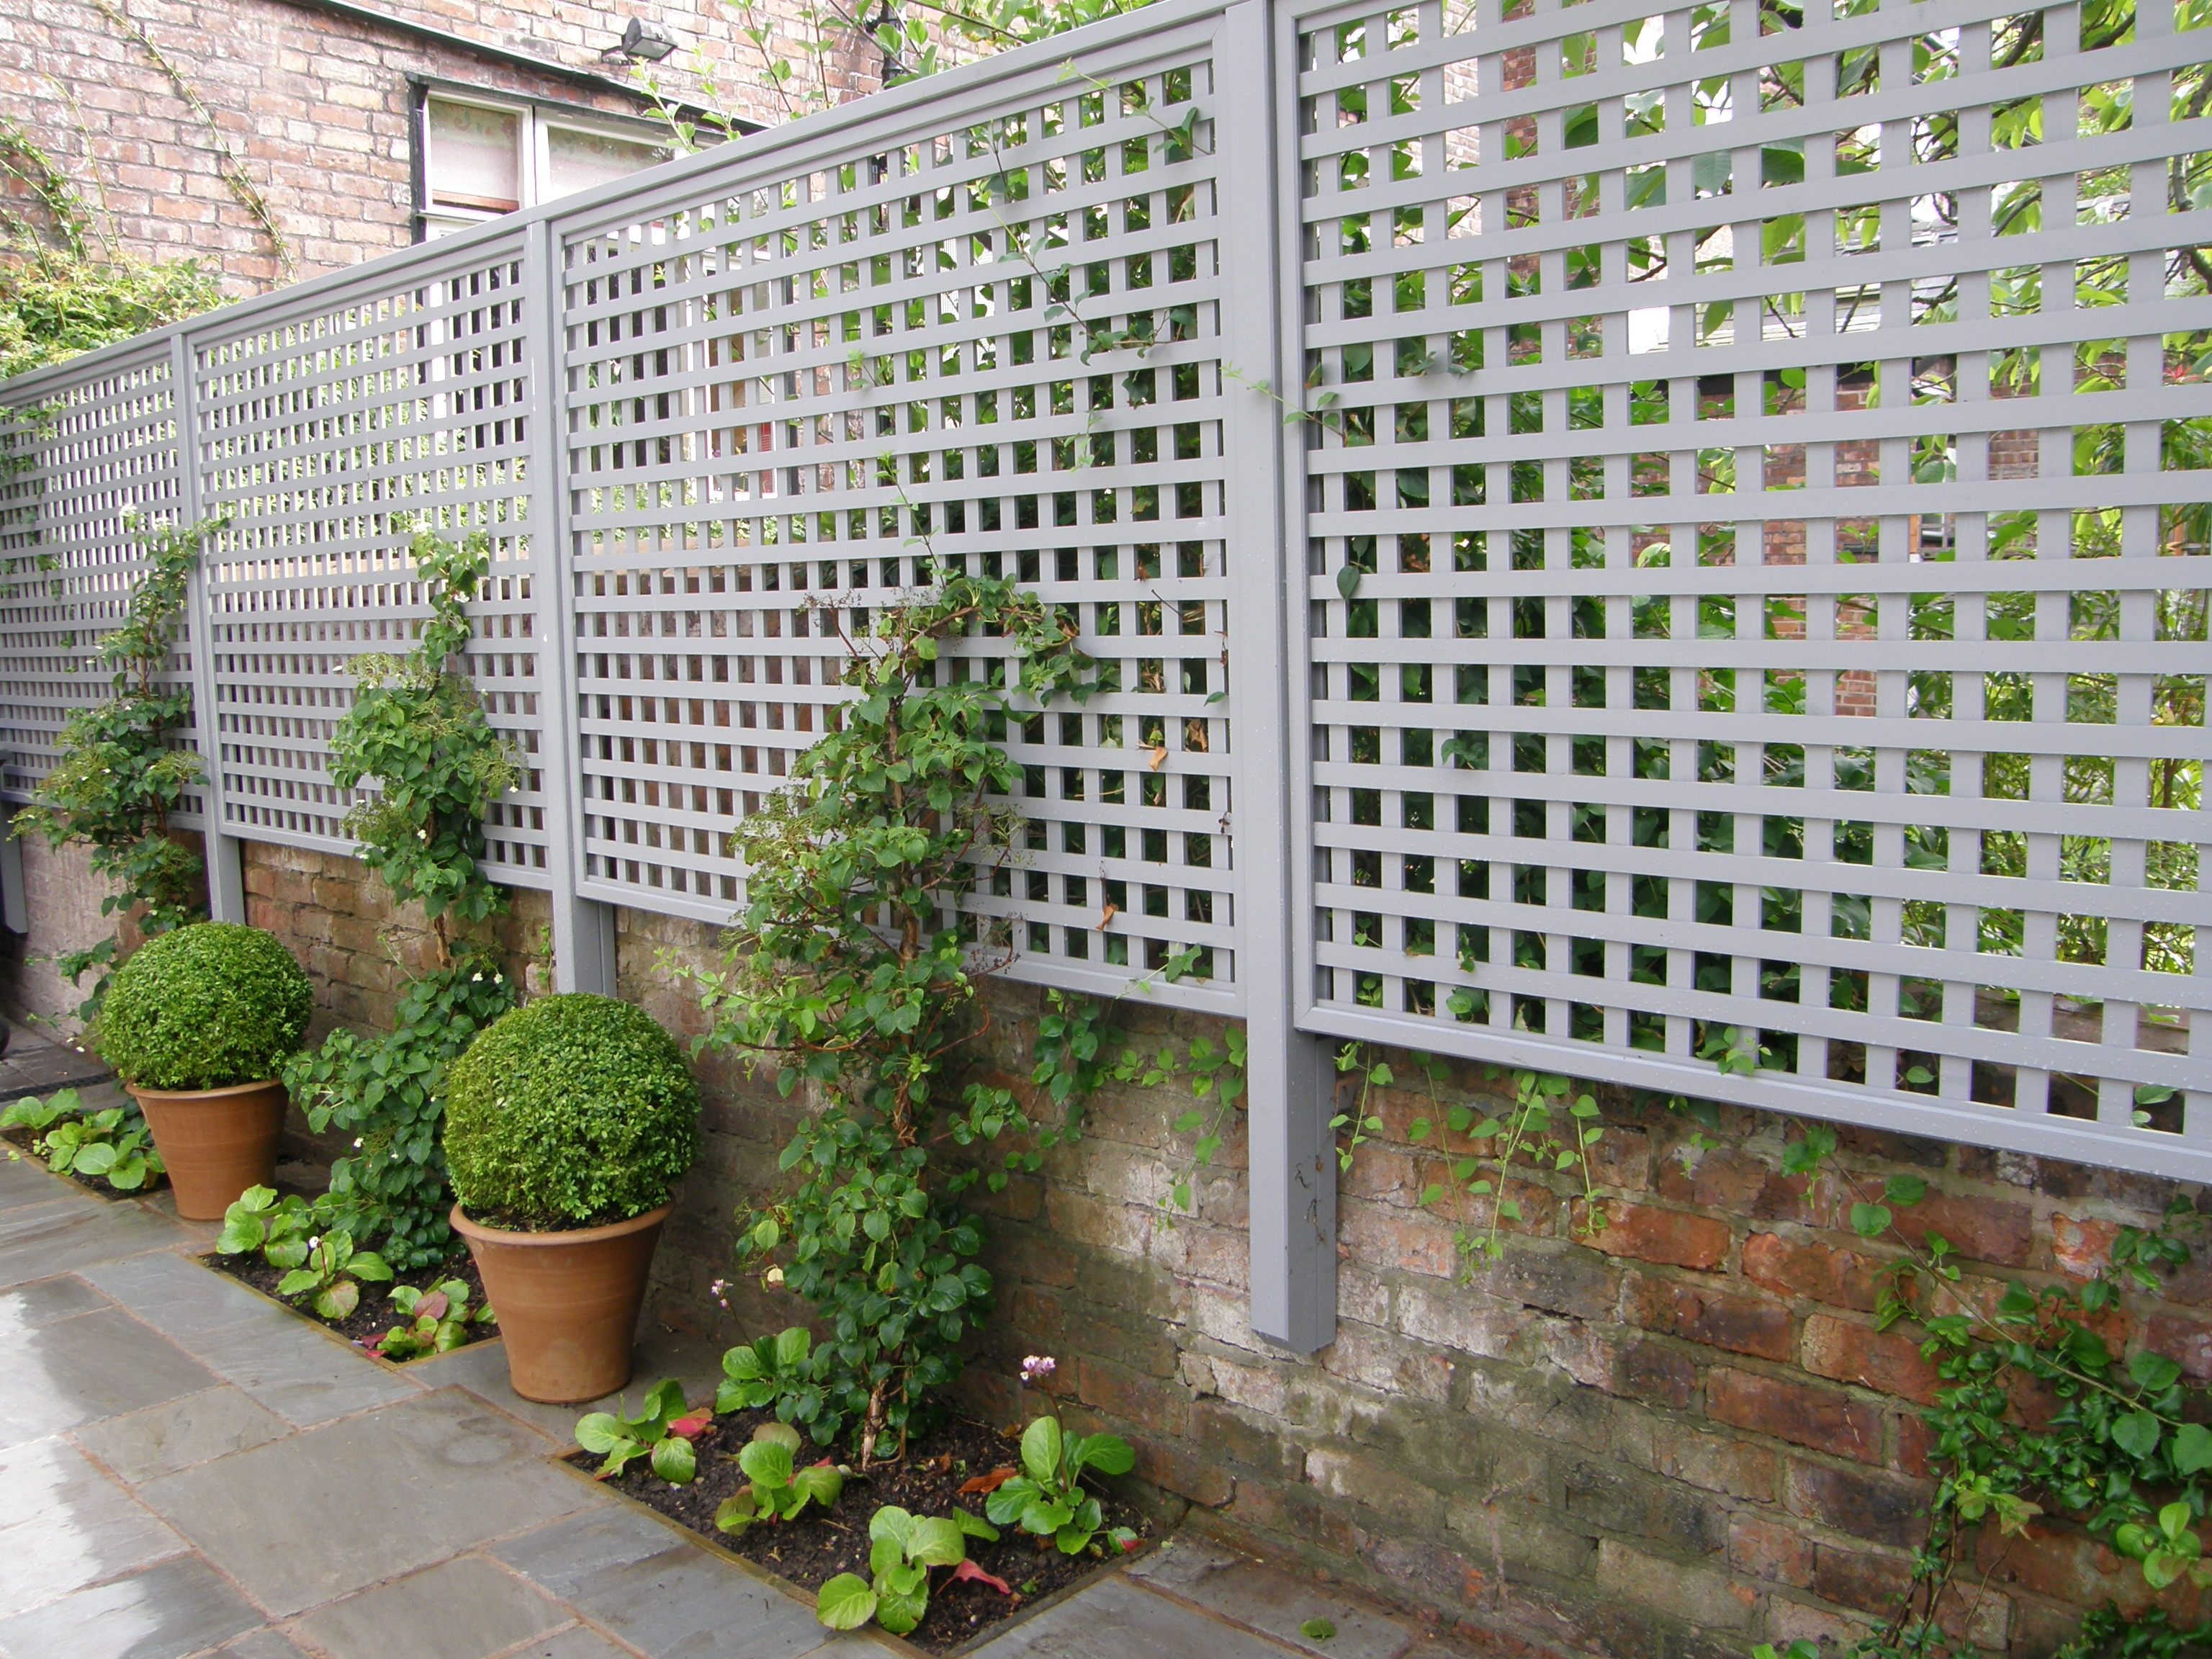 ideas for trellis in garden